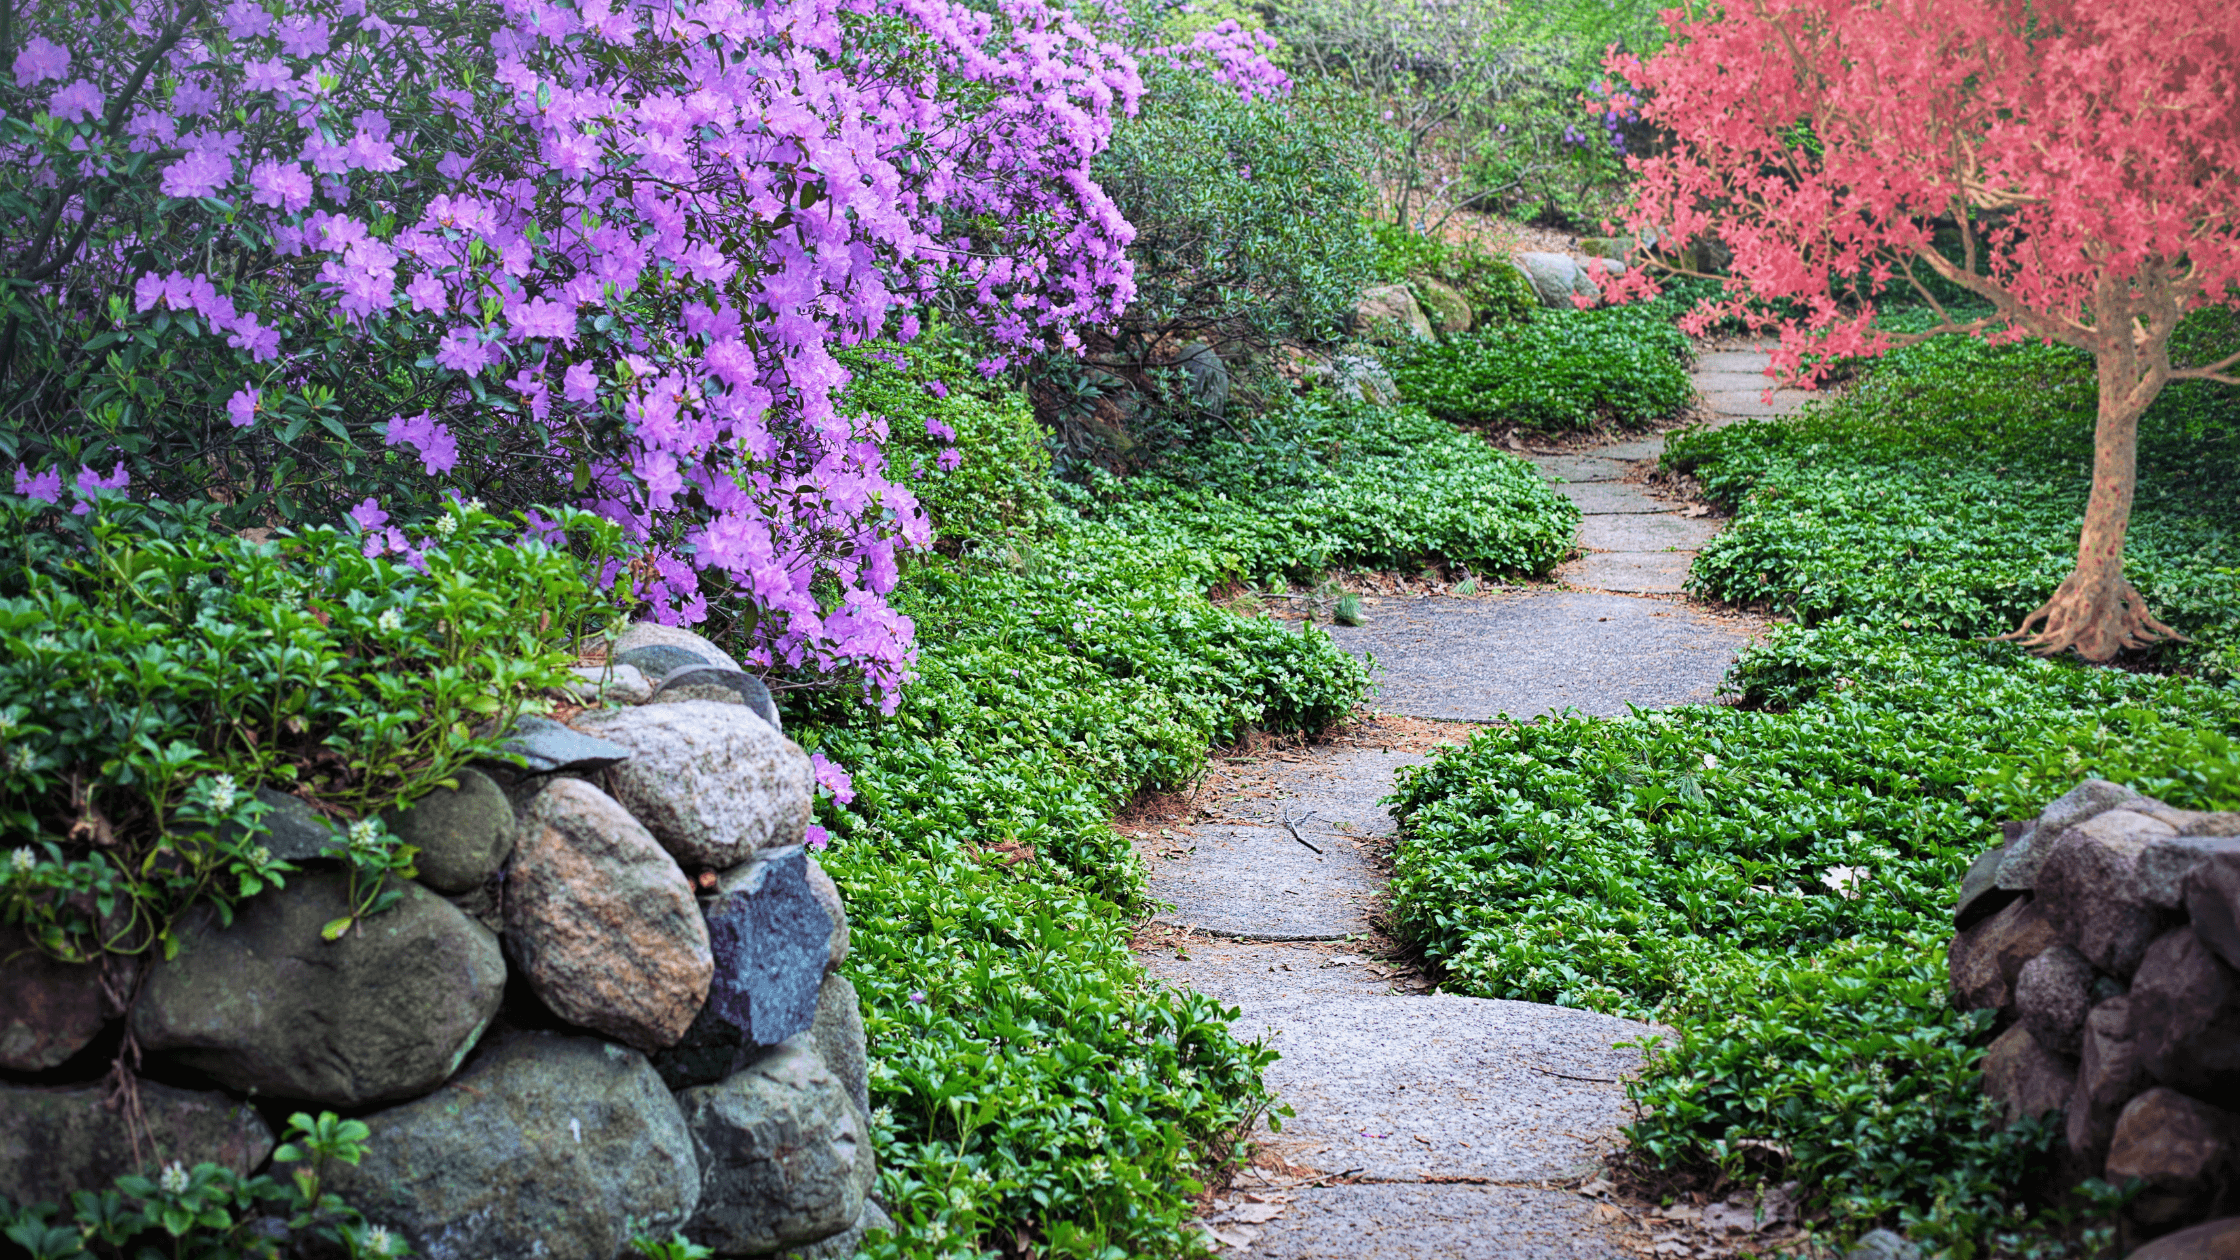 Garden path-finding your purpose in God